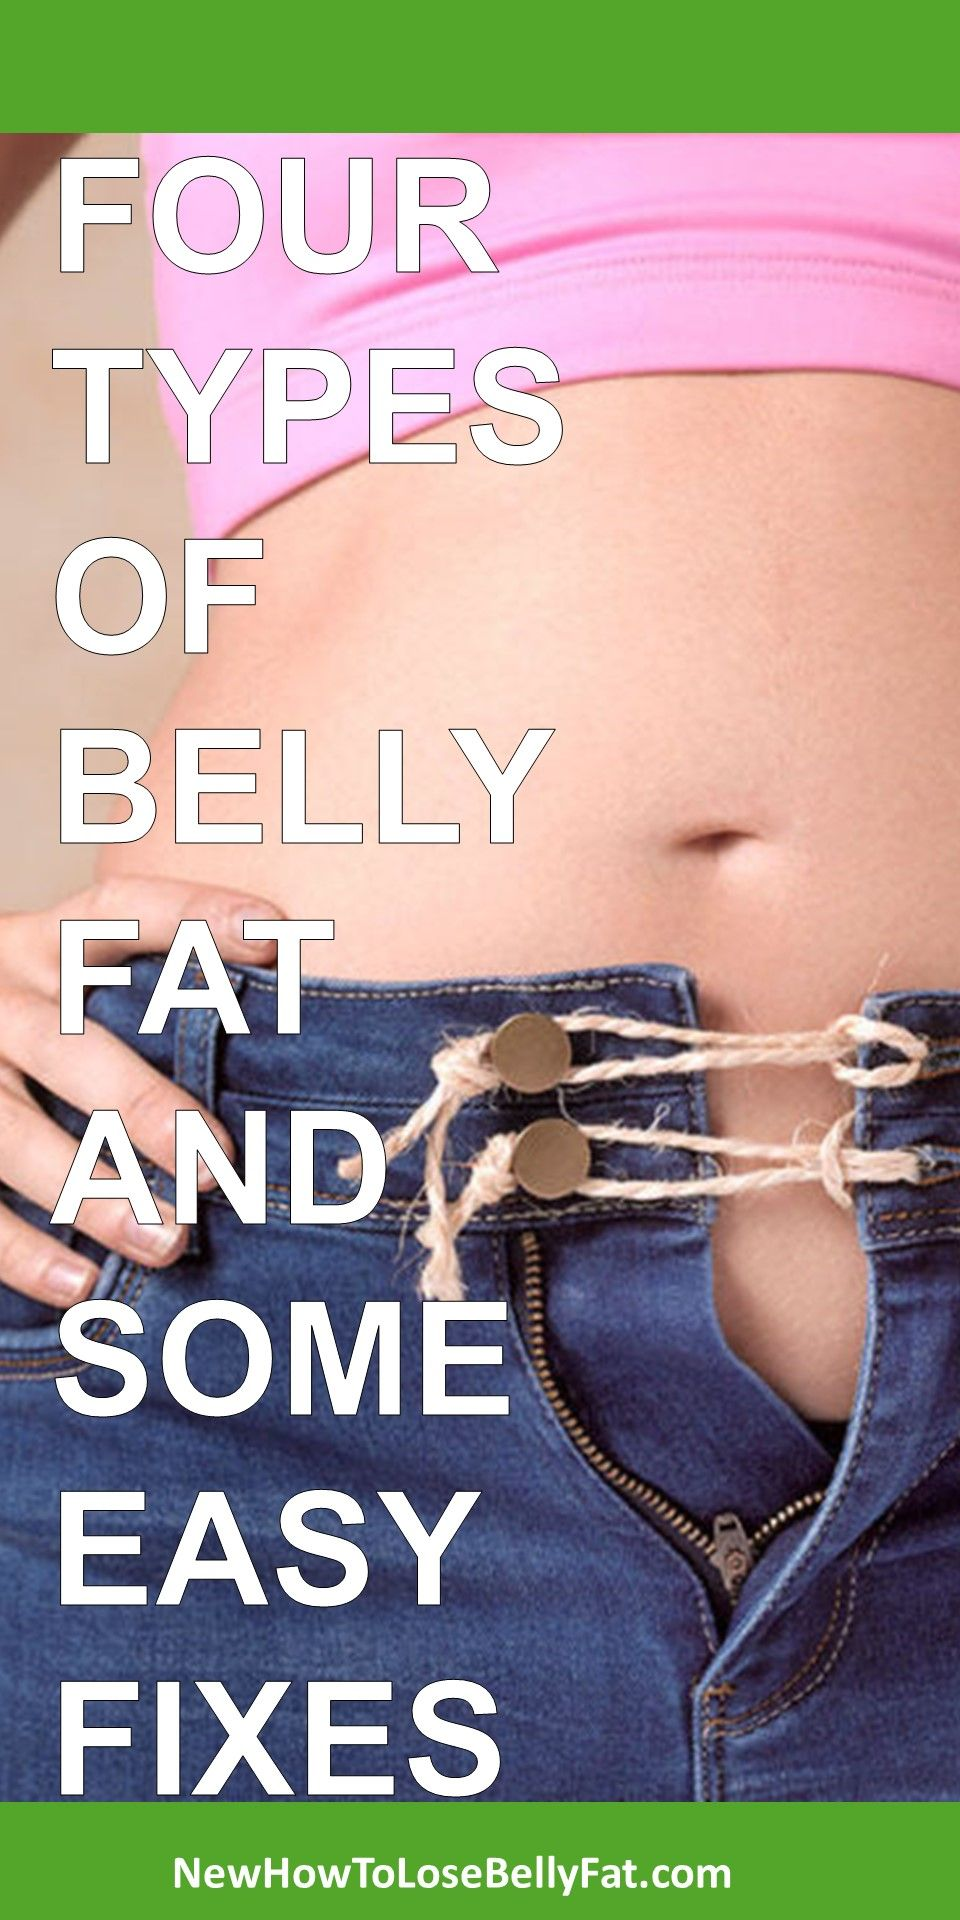 Healthiest way to reduce belly fat